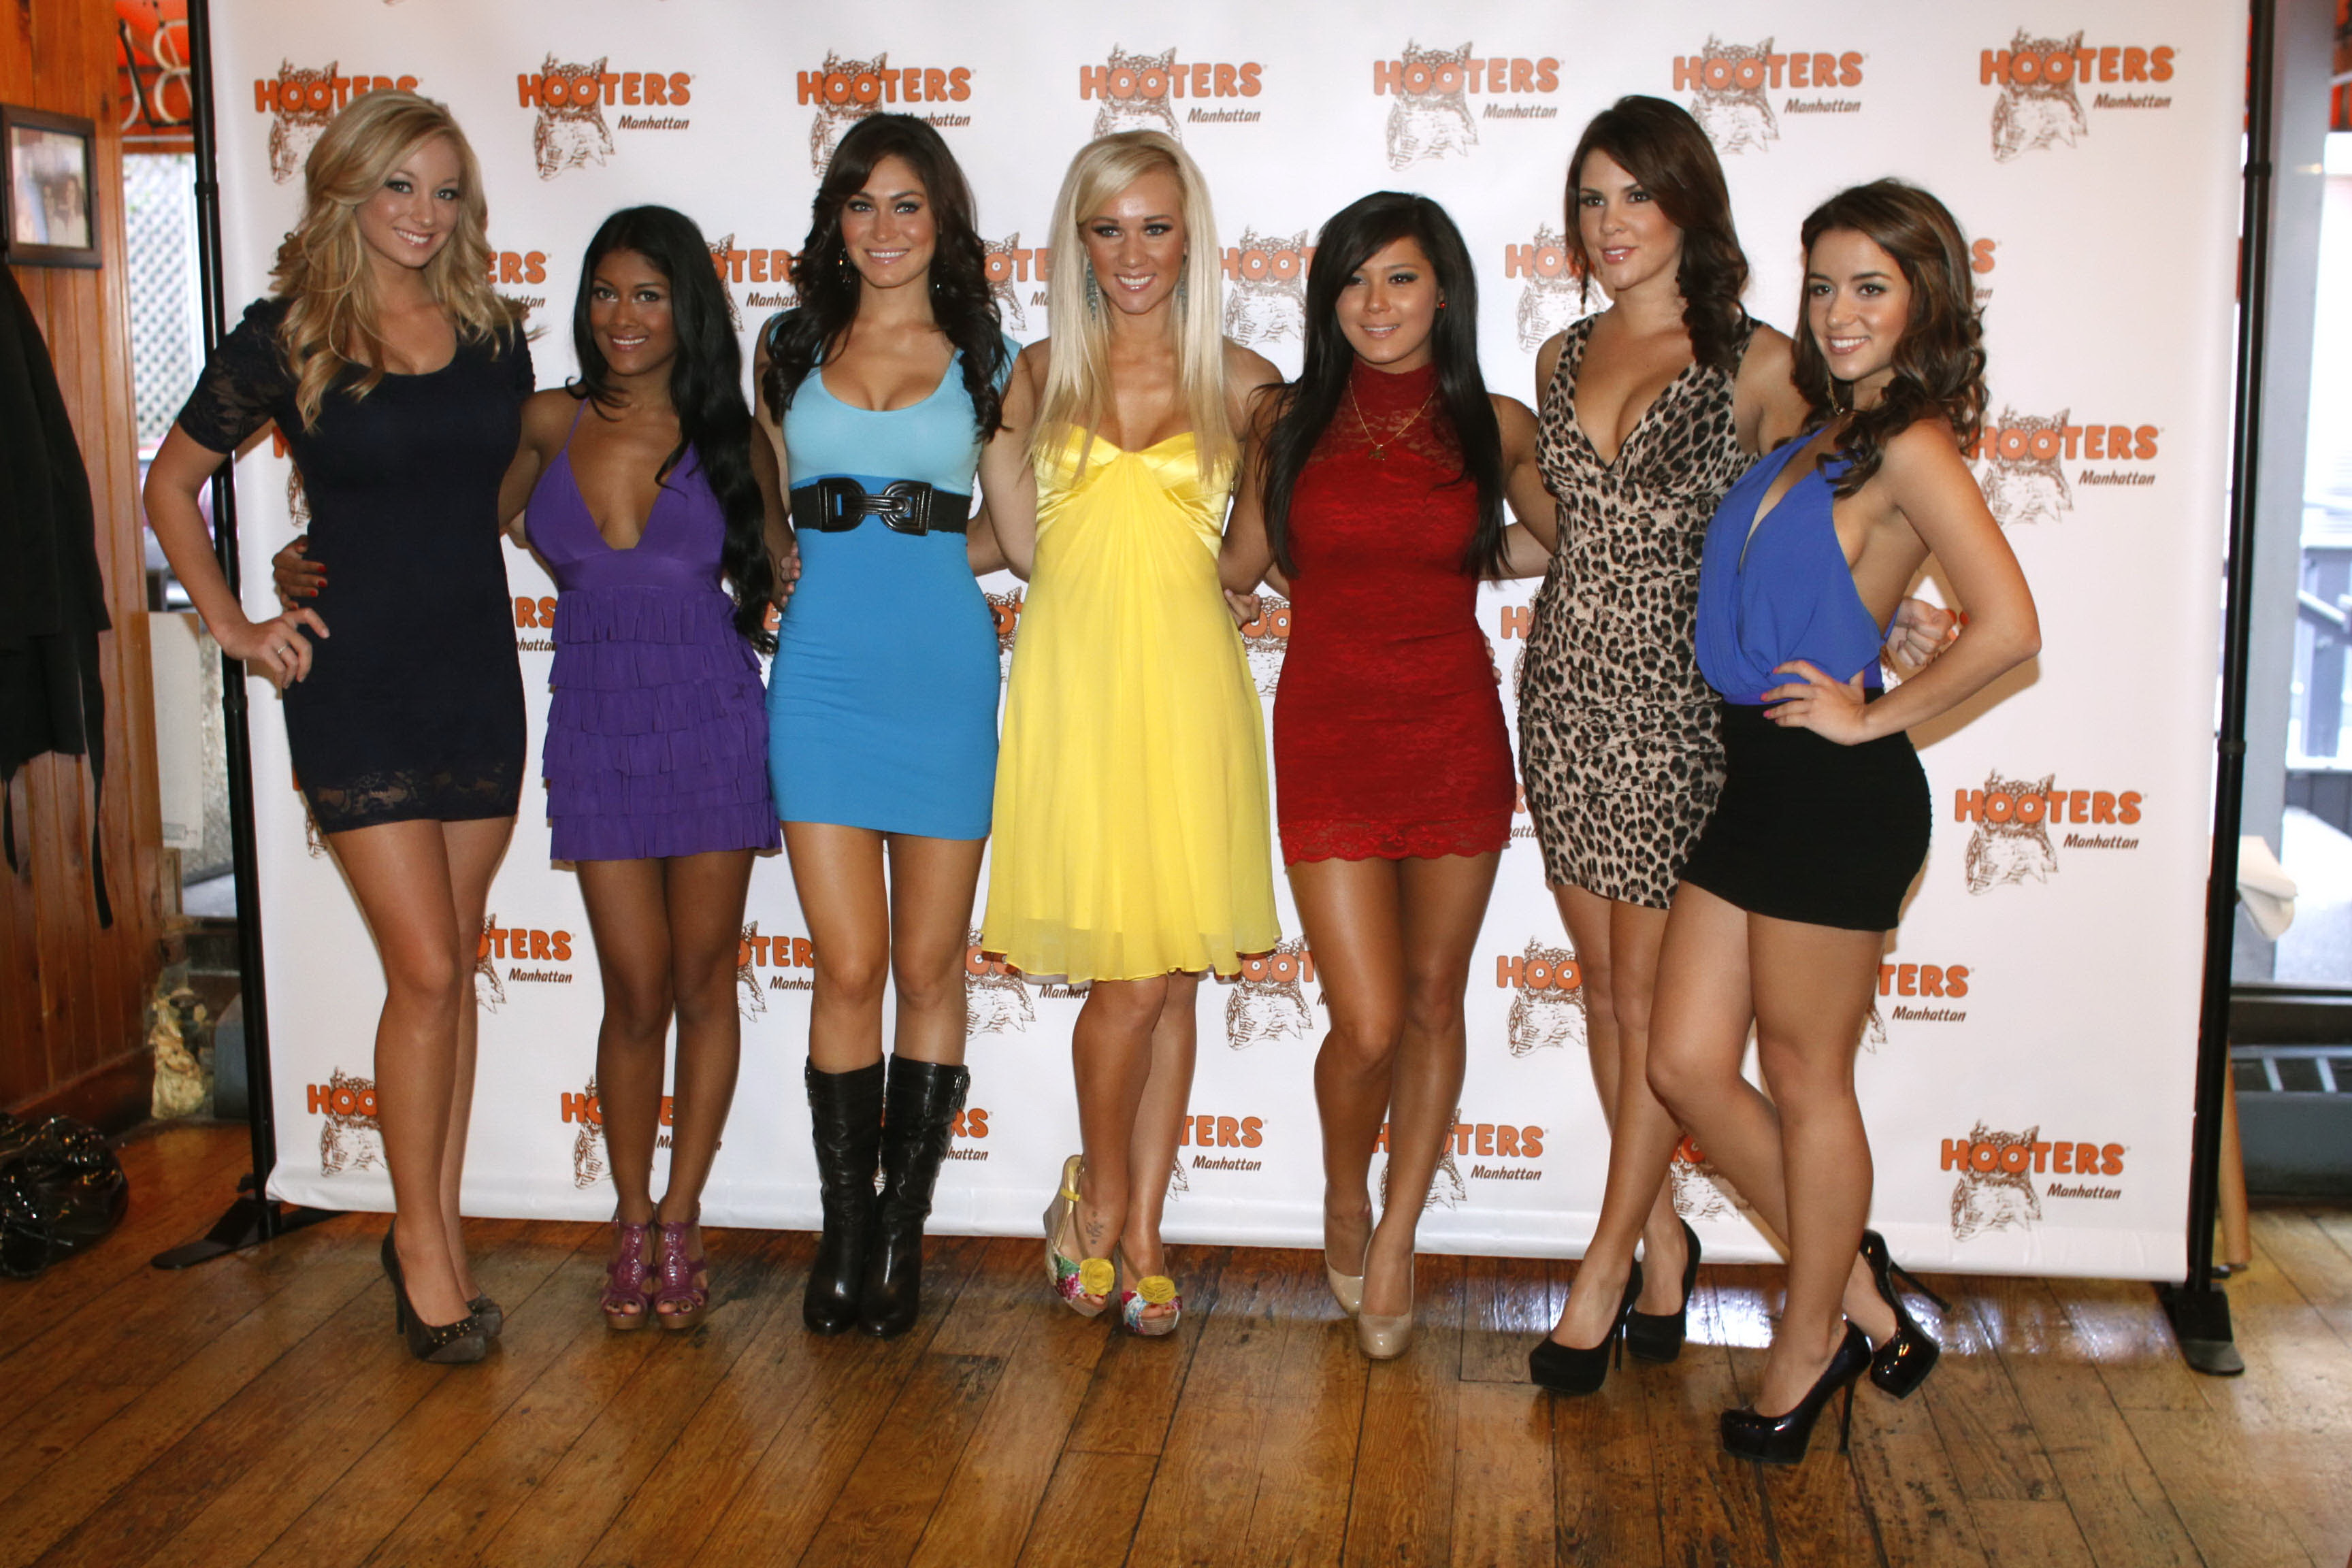 Hooters Calendar May : Hooters calendar girl series playing and similar items